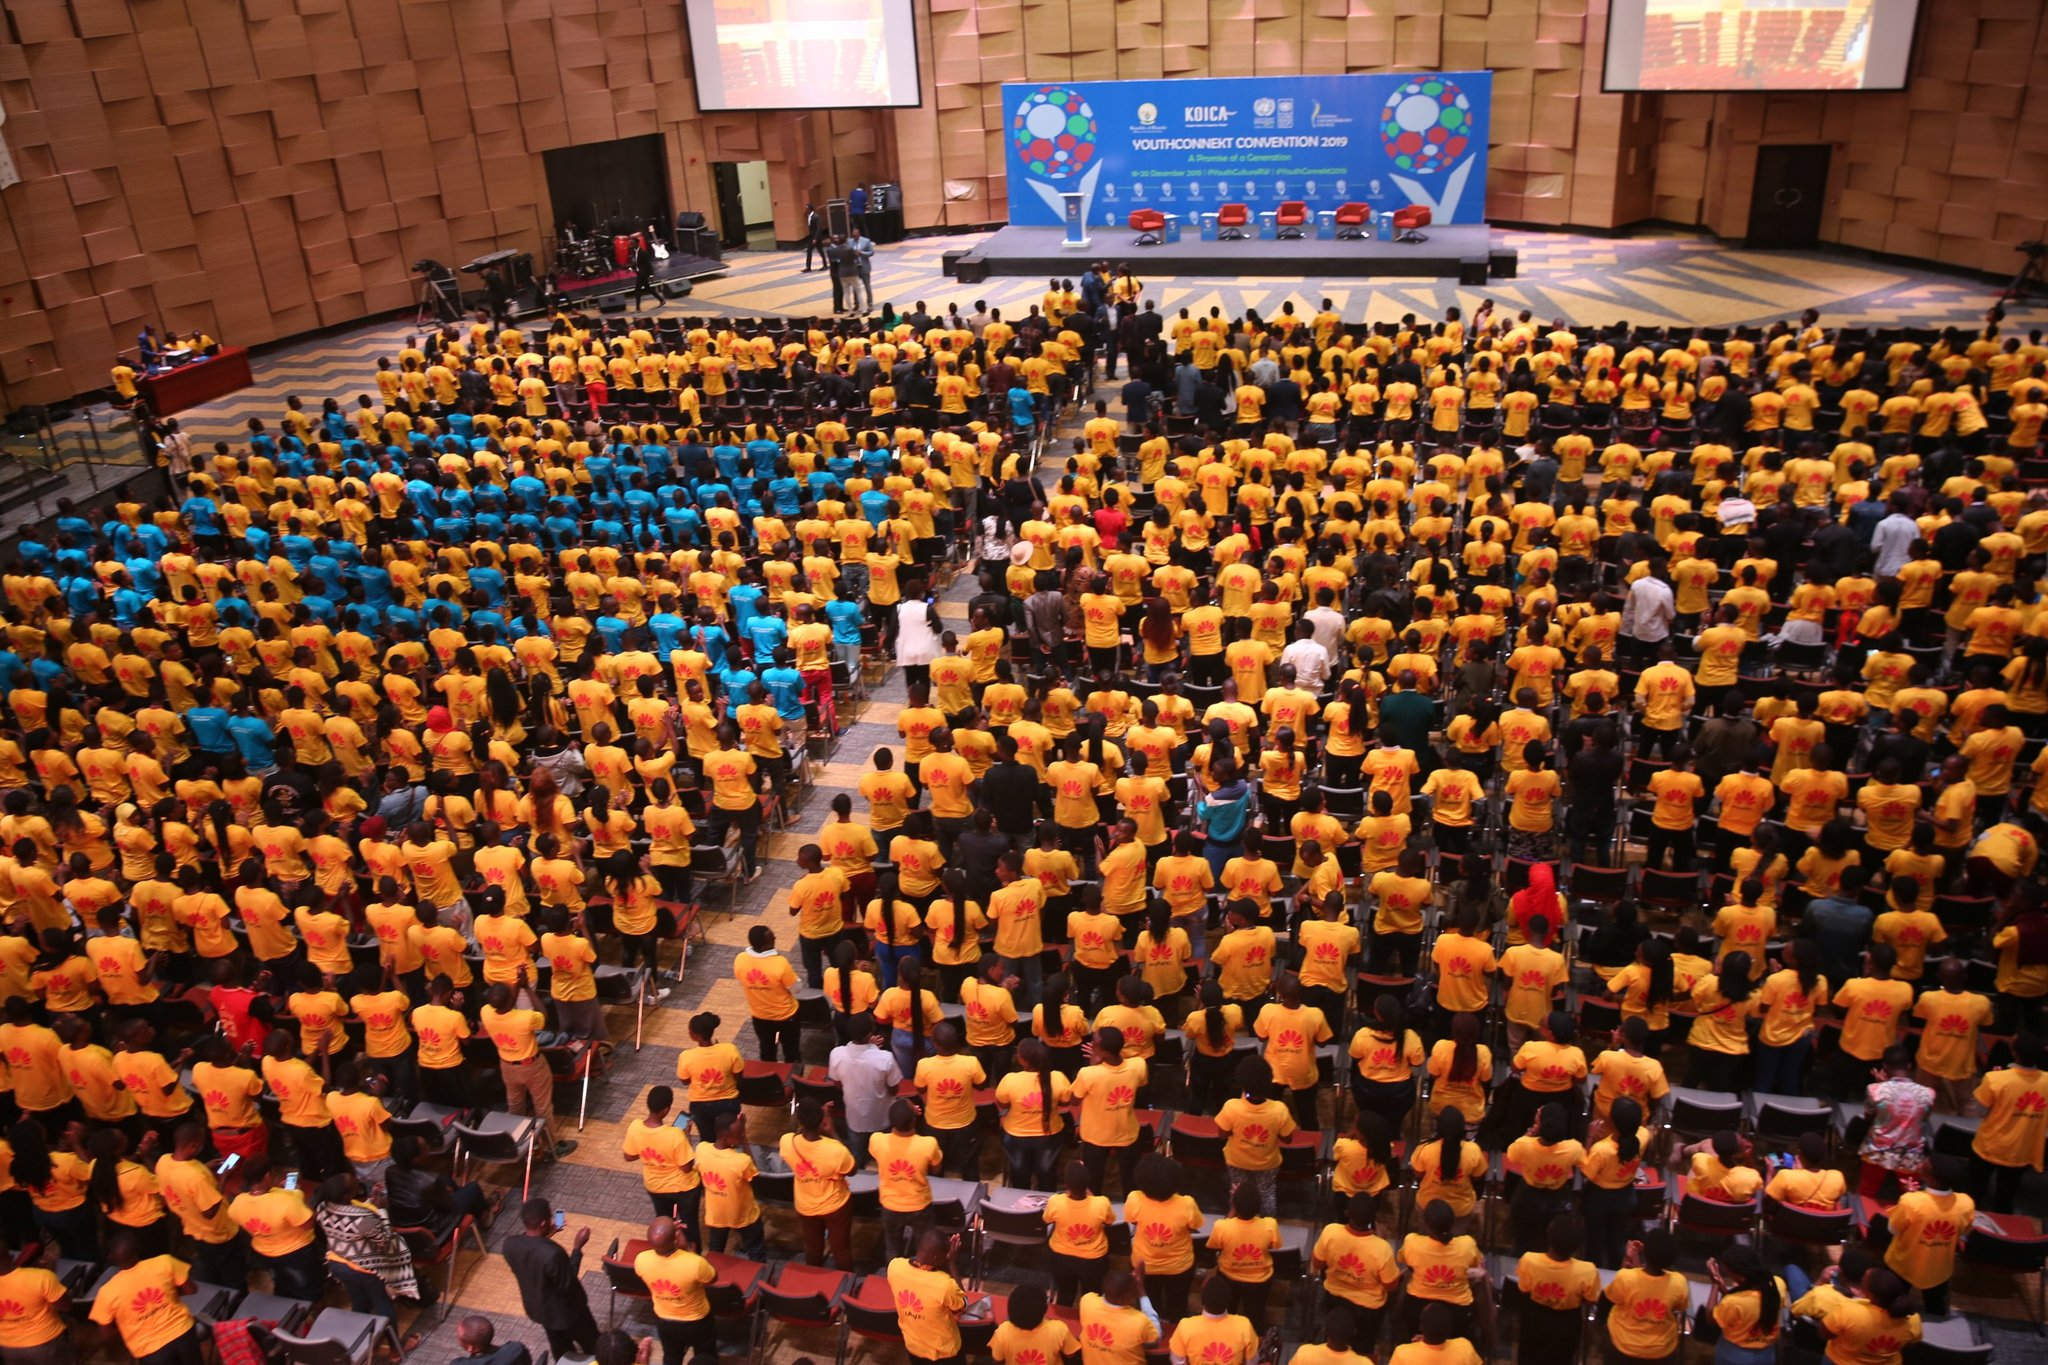 Over 3000 youths taking part in YouthConnekt Convention 2019 at Intare Conference Arena on 18 Wednesday./Courtesy